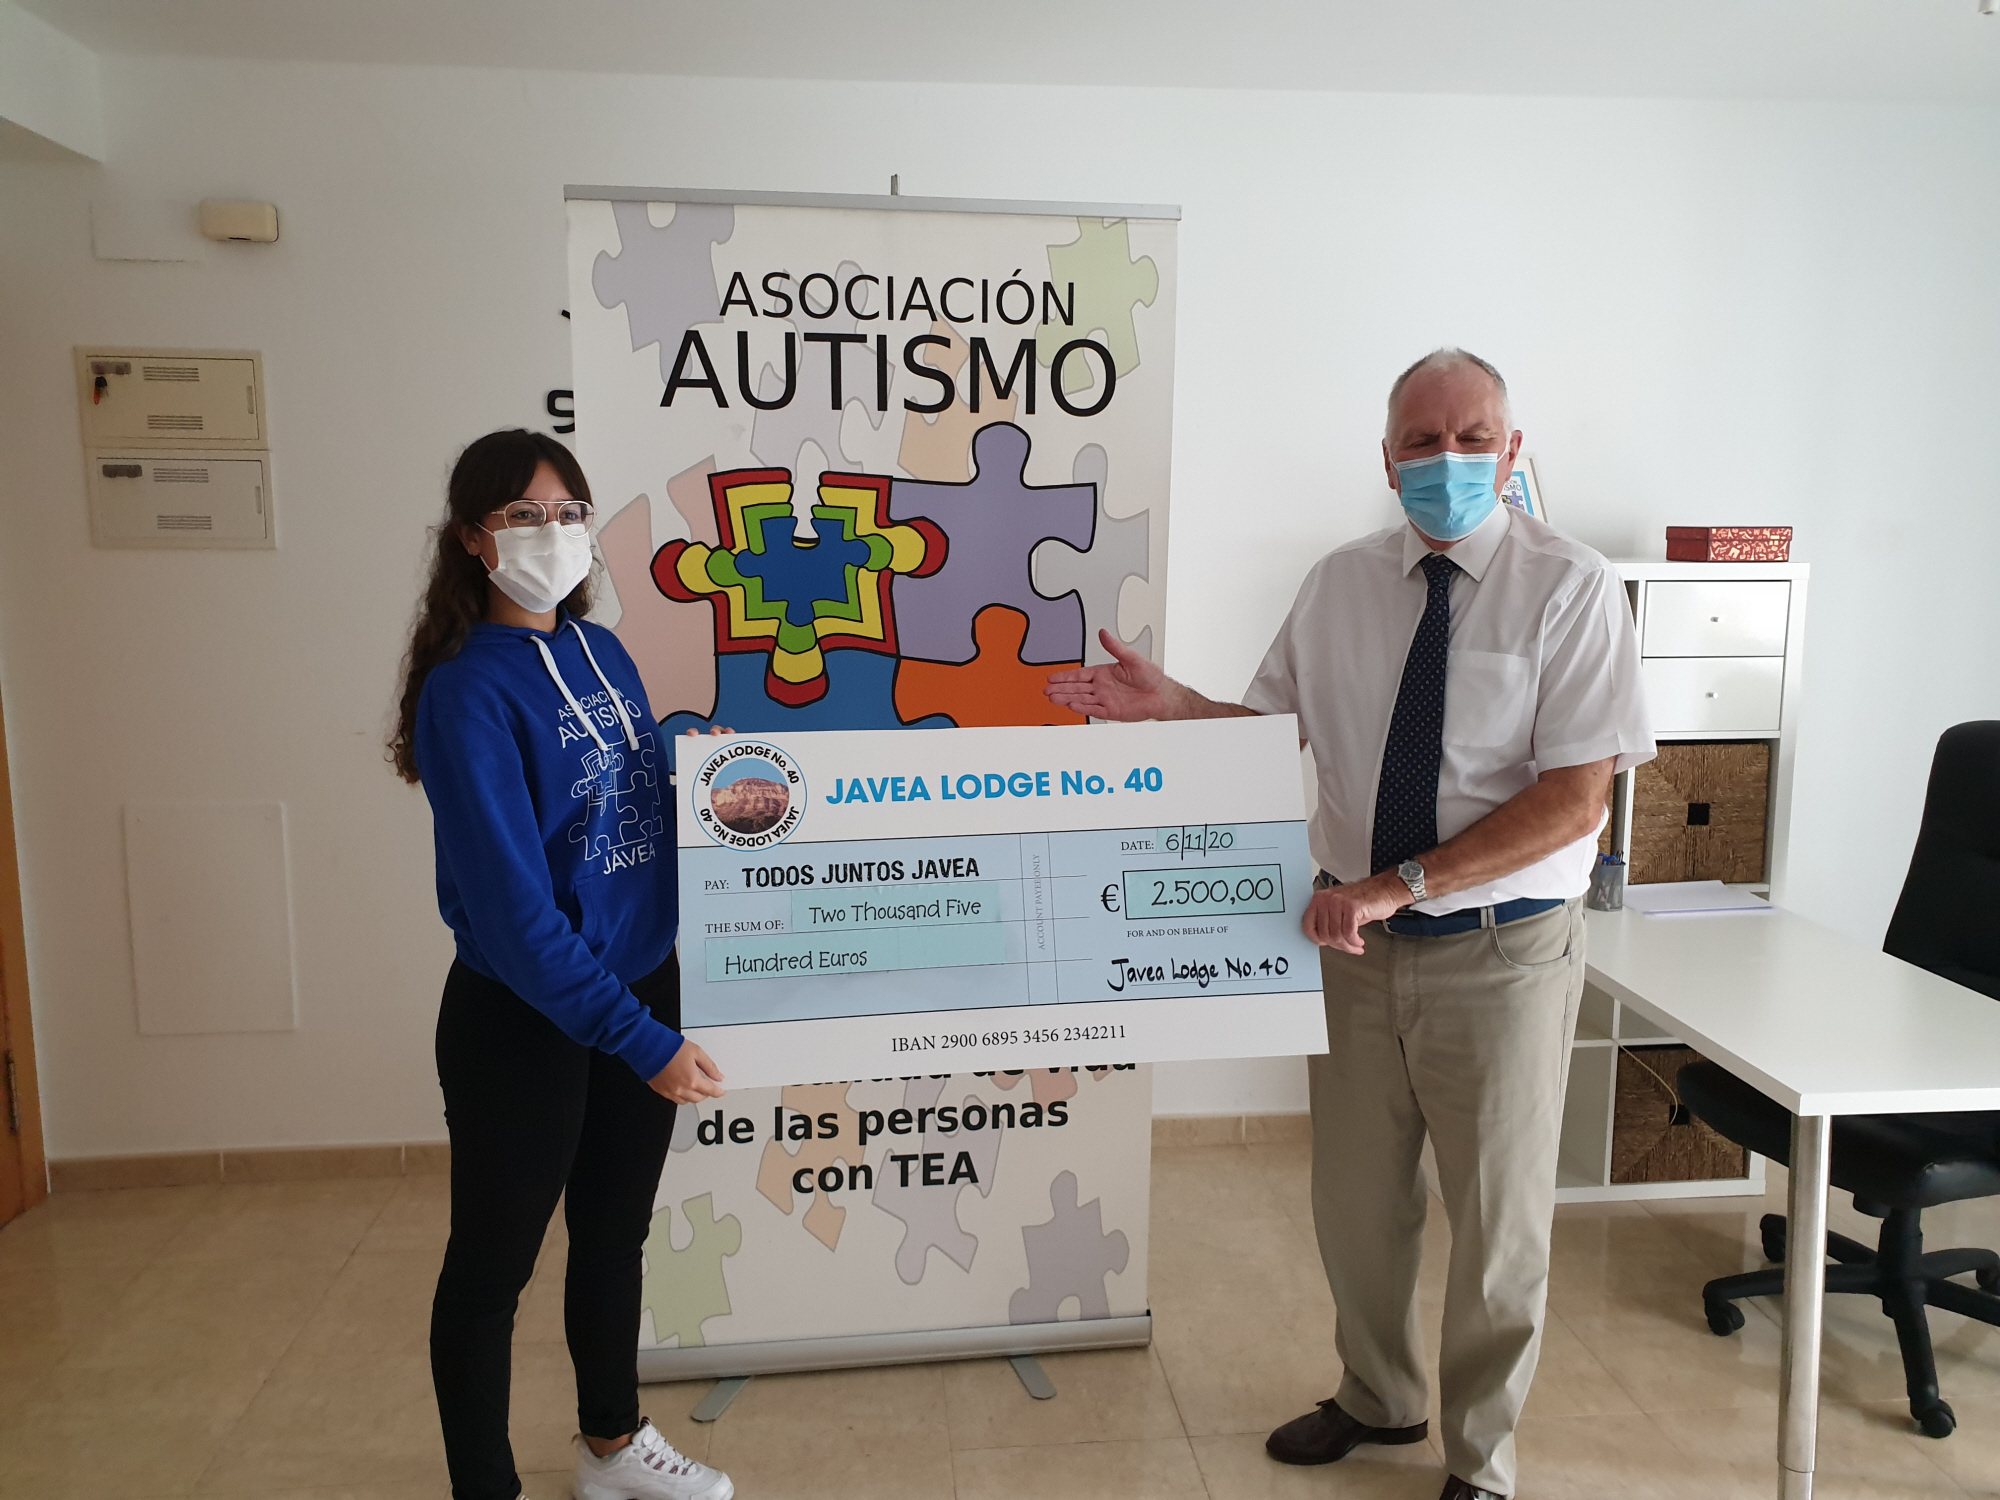 Freemasons provide warmth for autistic children.